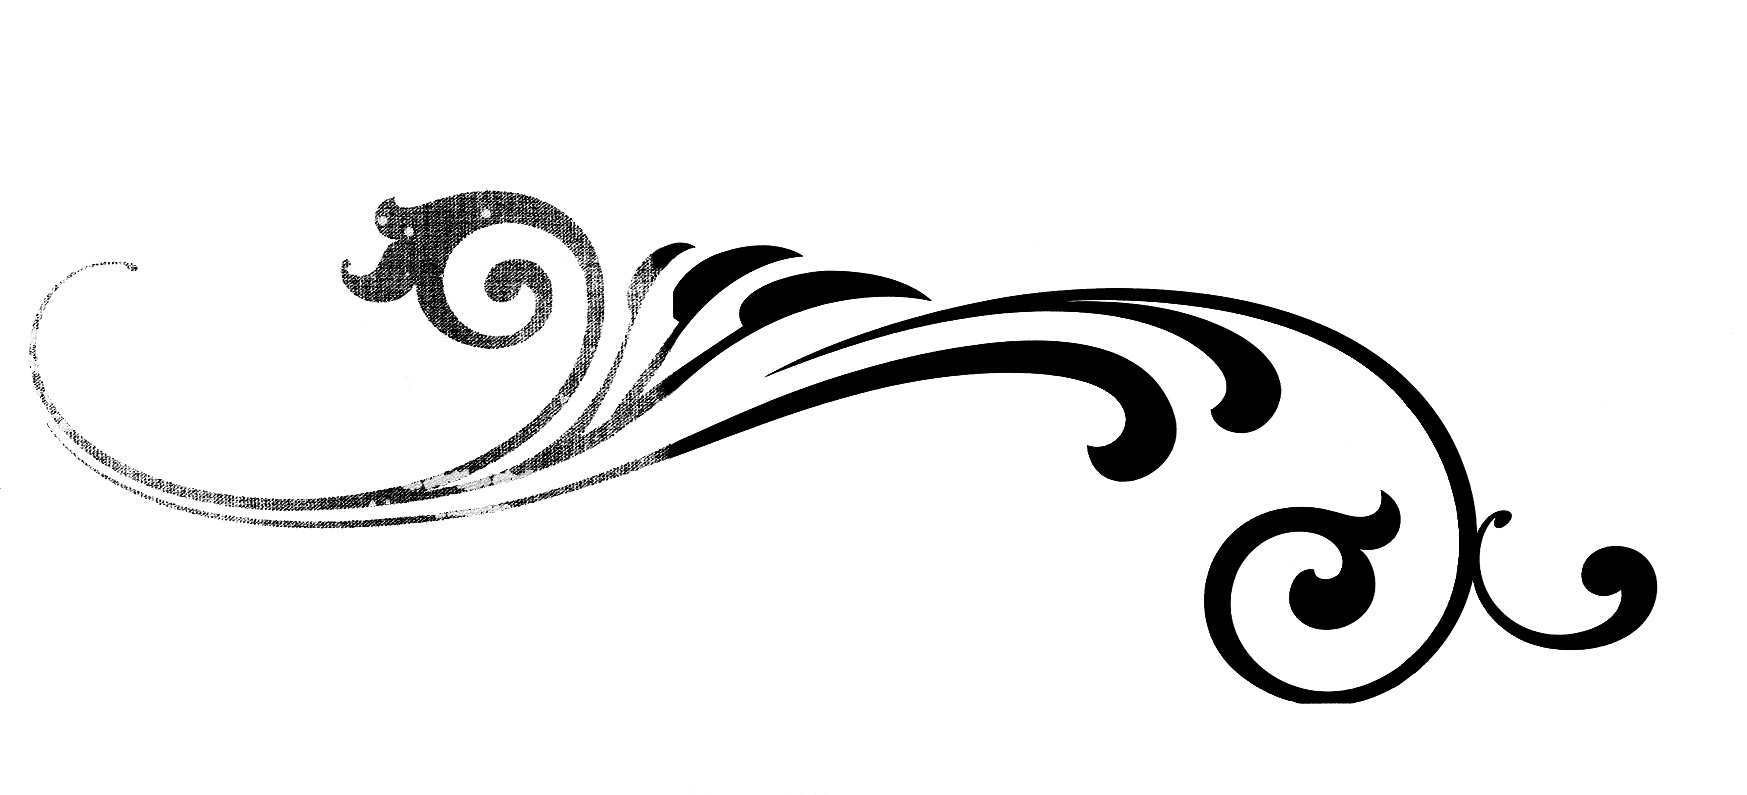 1747x795 Ornamental Clipart Fancy